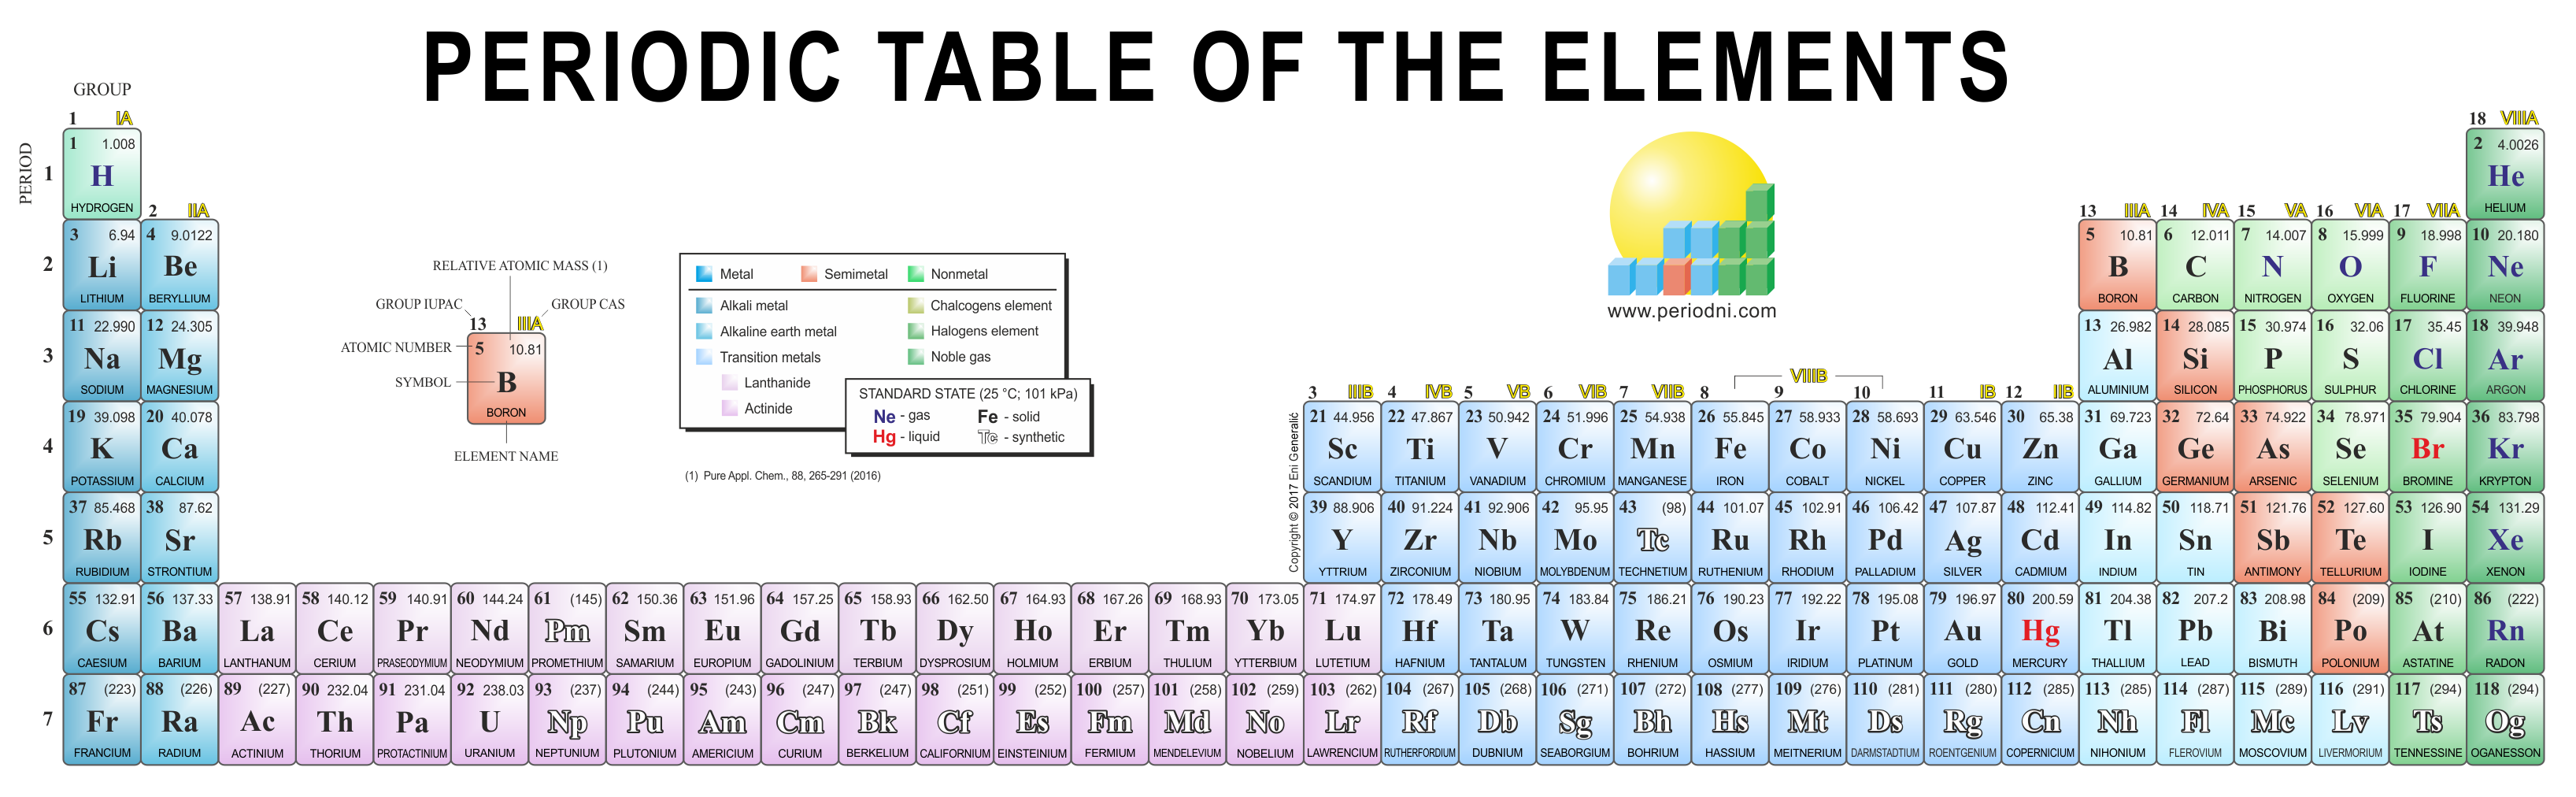 Chemistry images gallery 32 column periodic table urtaz Images